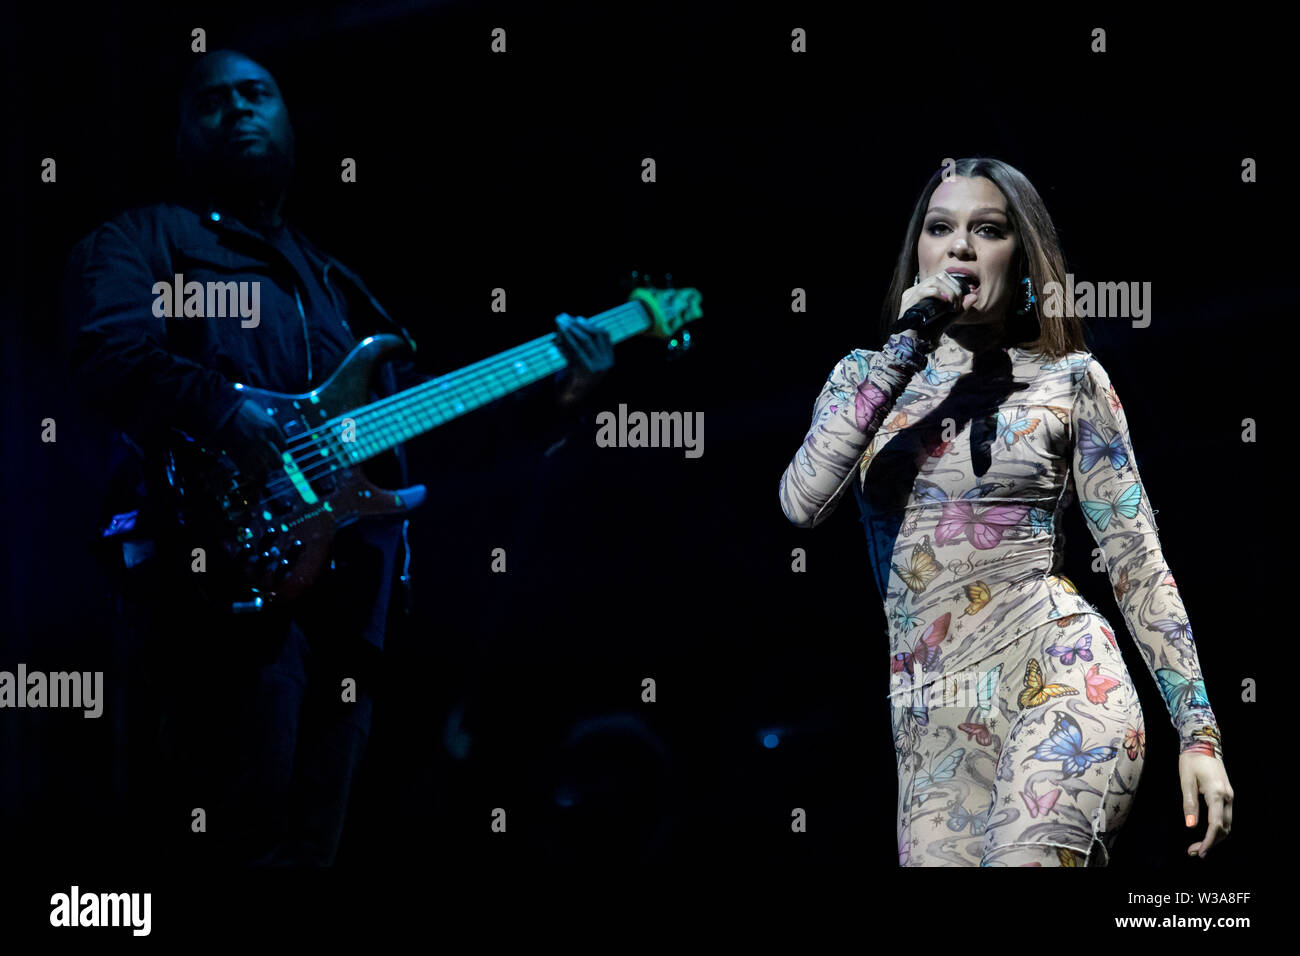 Jessie J on stage headlining the Brentwood Festival presents Evoke, Saturday 13th July 2019 - Stock Image